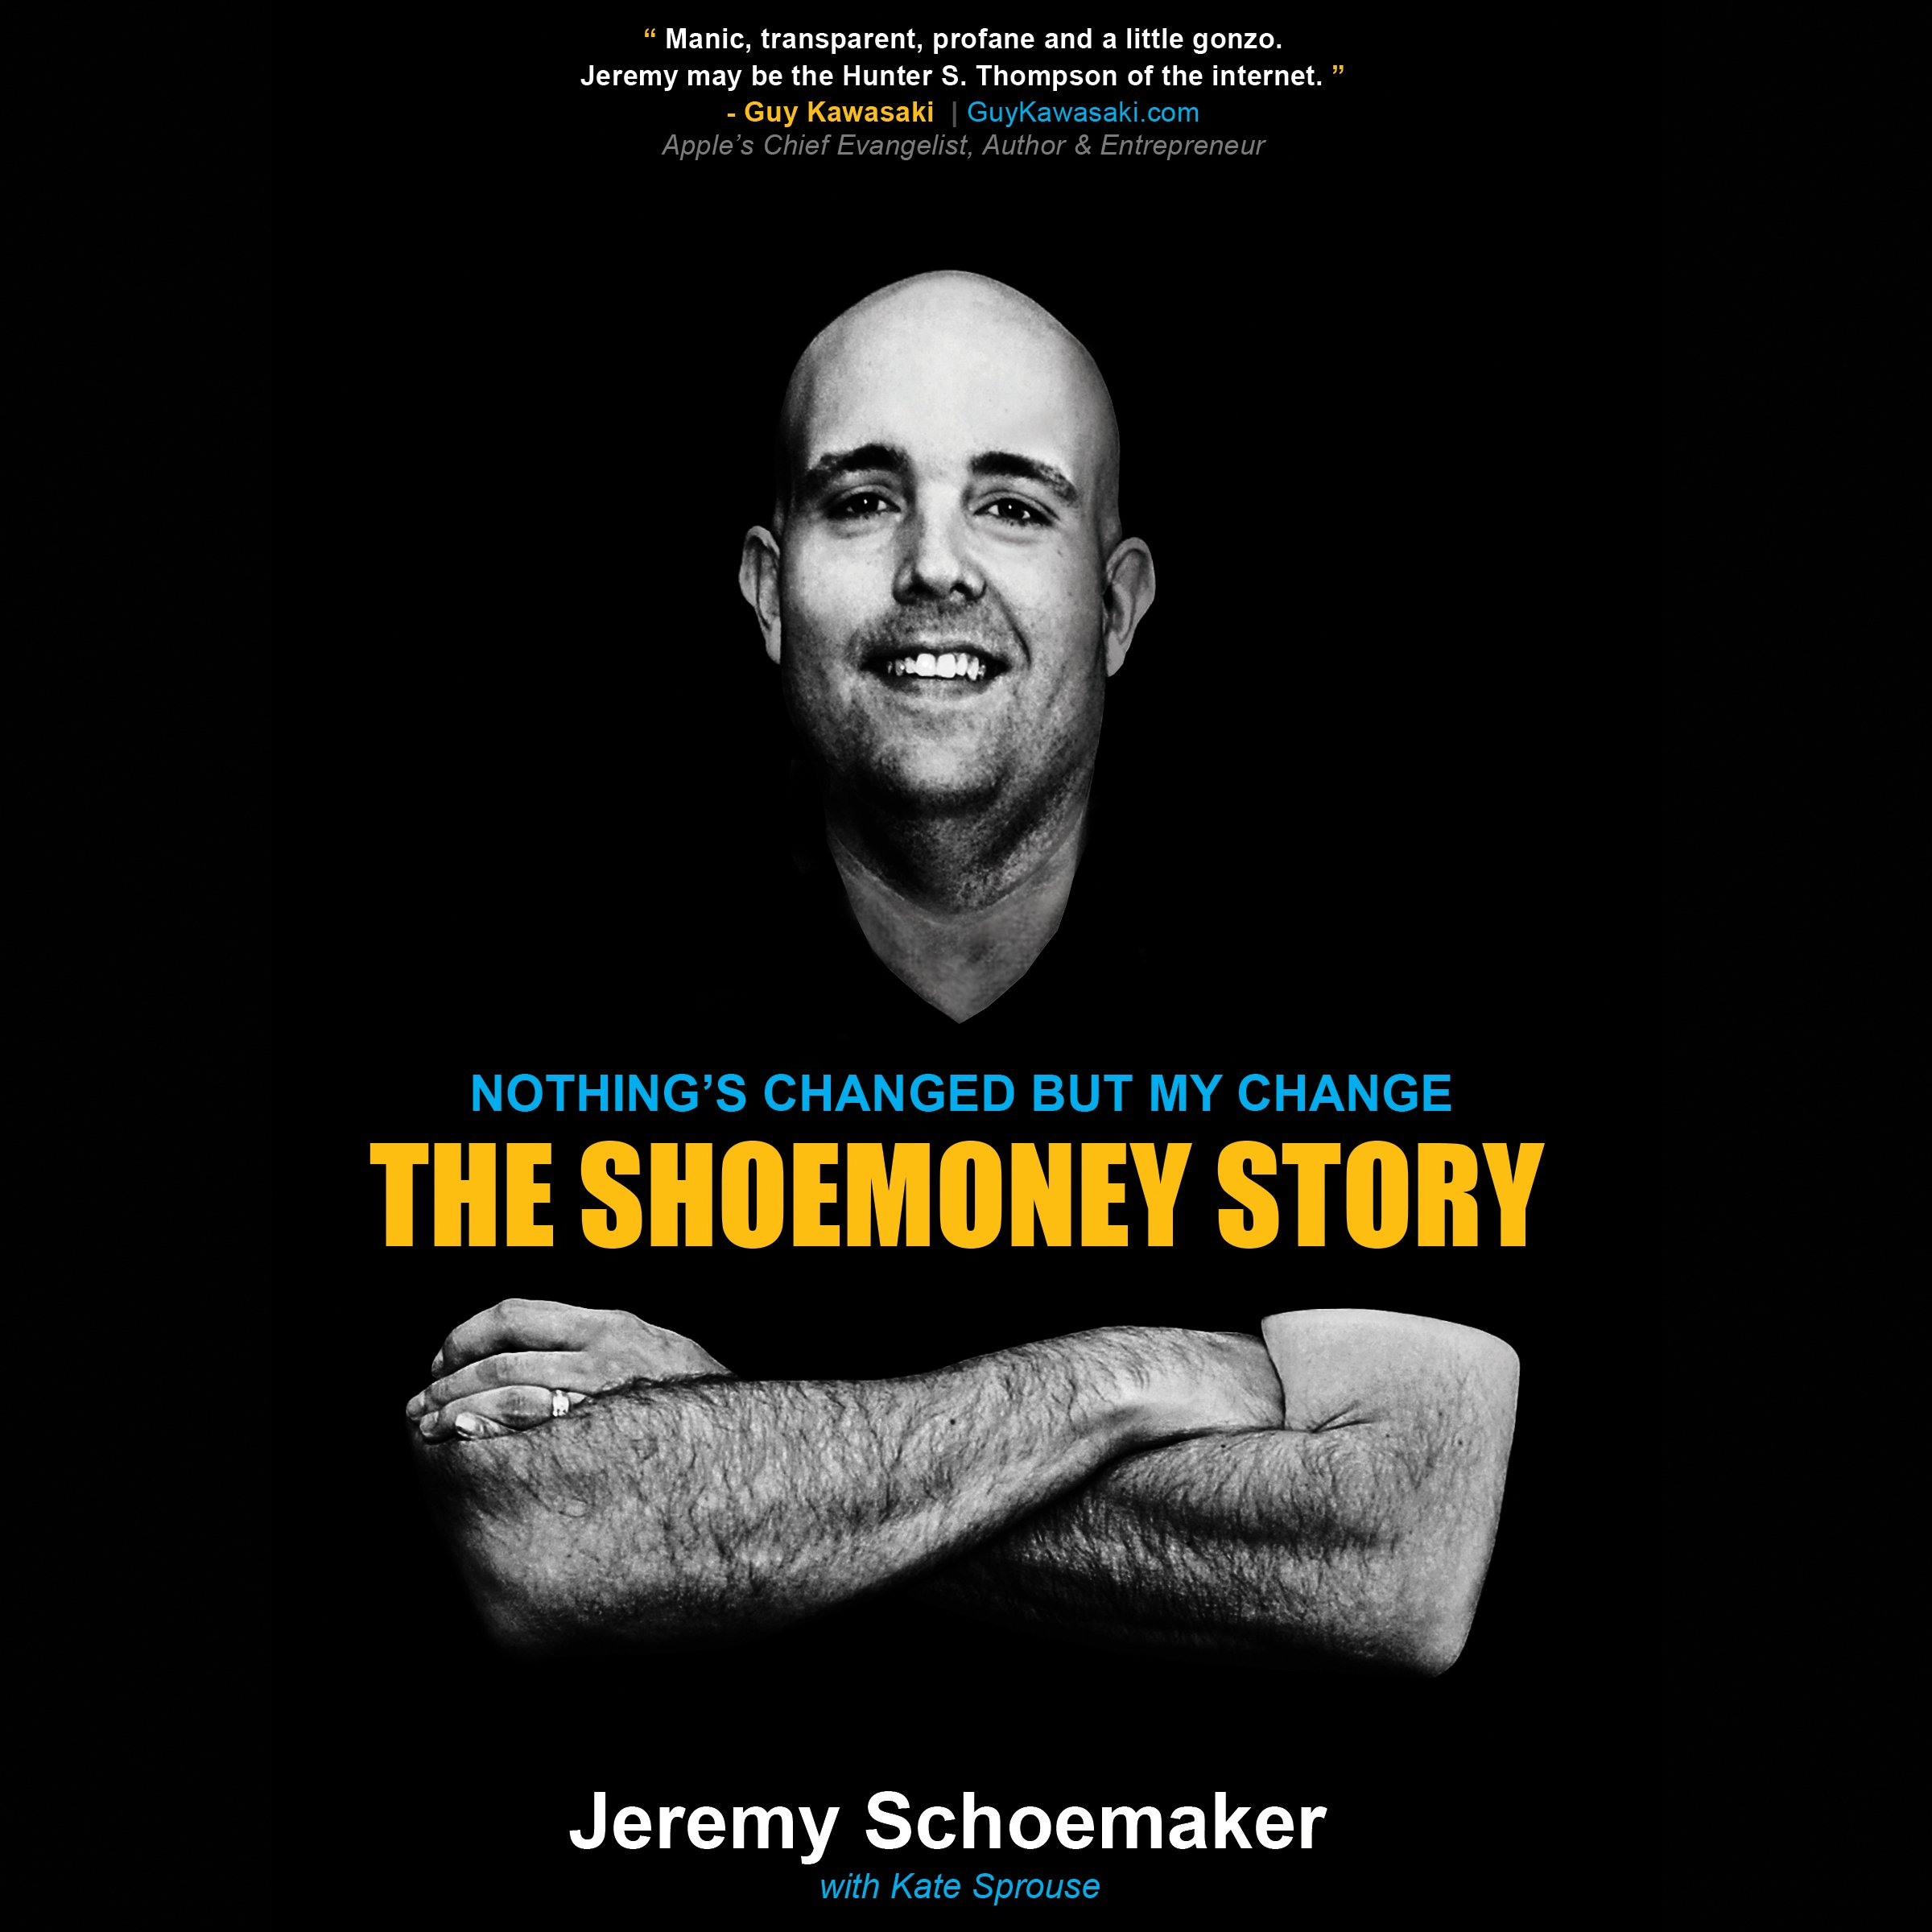 Nothing's Changed But My Change: The ShoeMoney Story